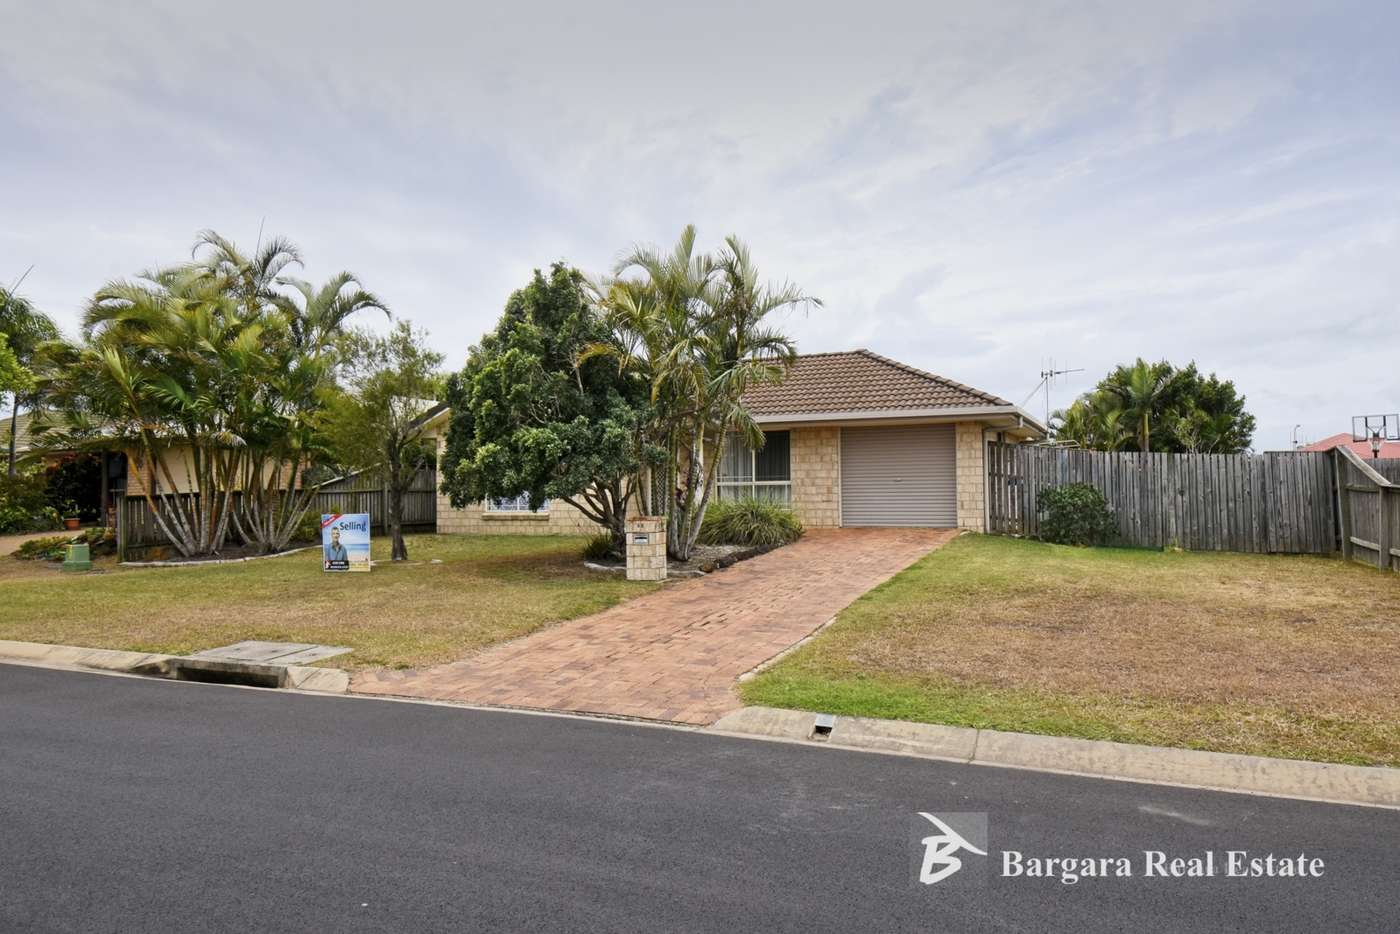 Main view of Homely house listing, 22 Heritage Dr, Bargara QLD 4670